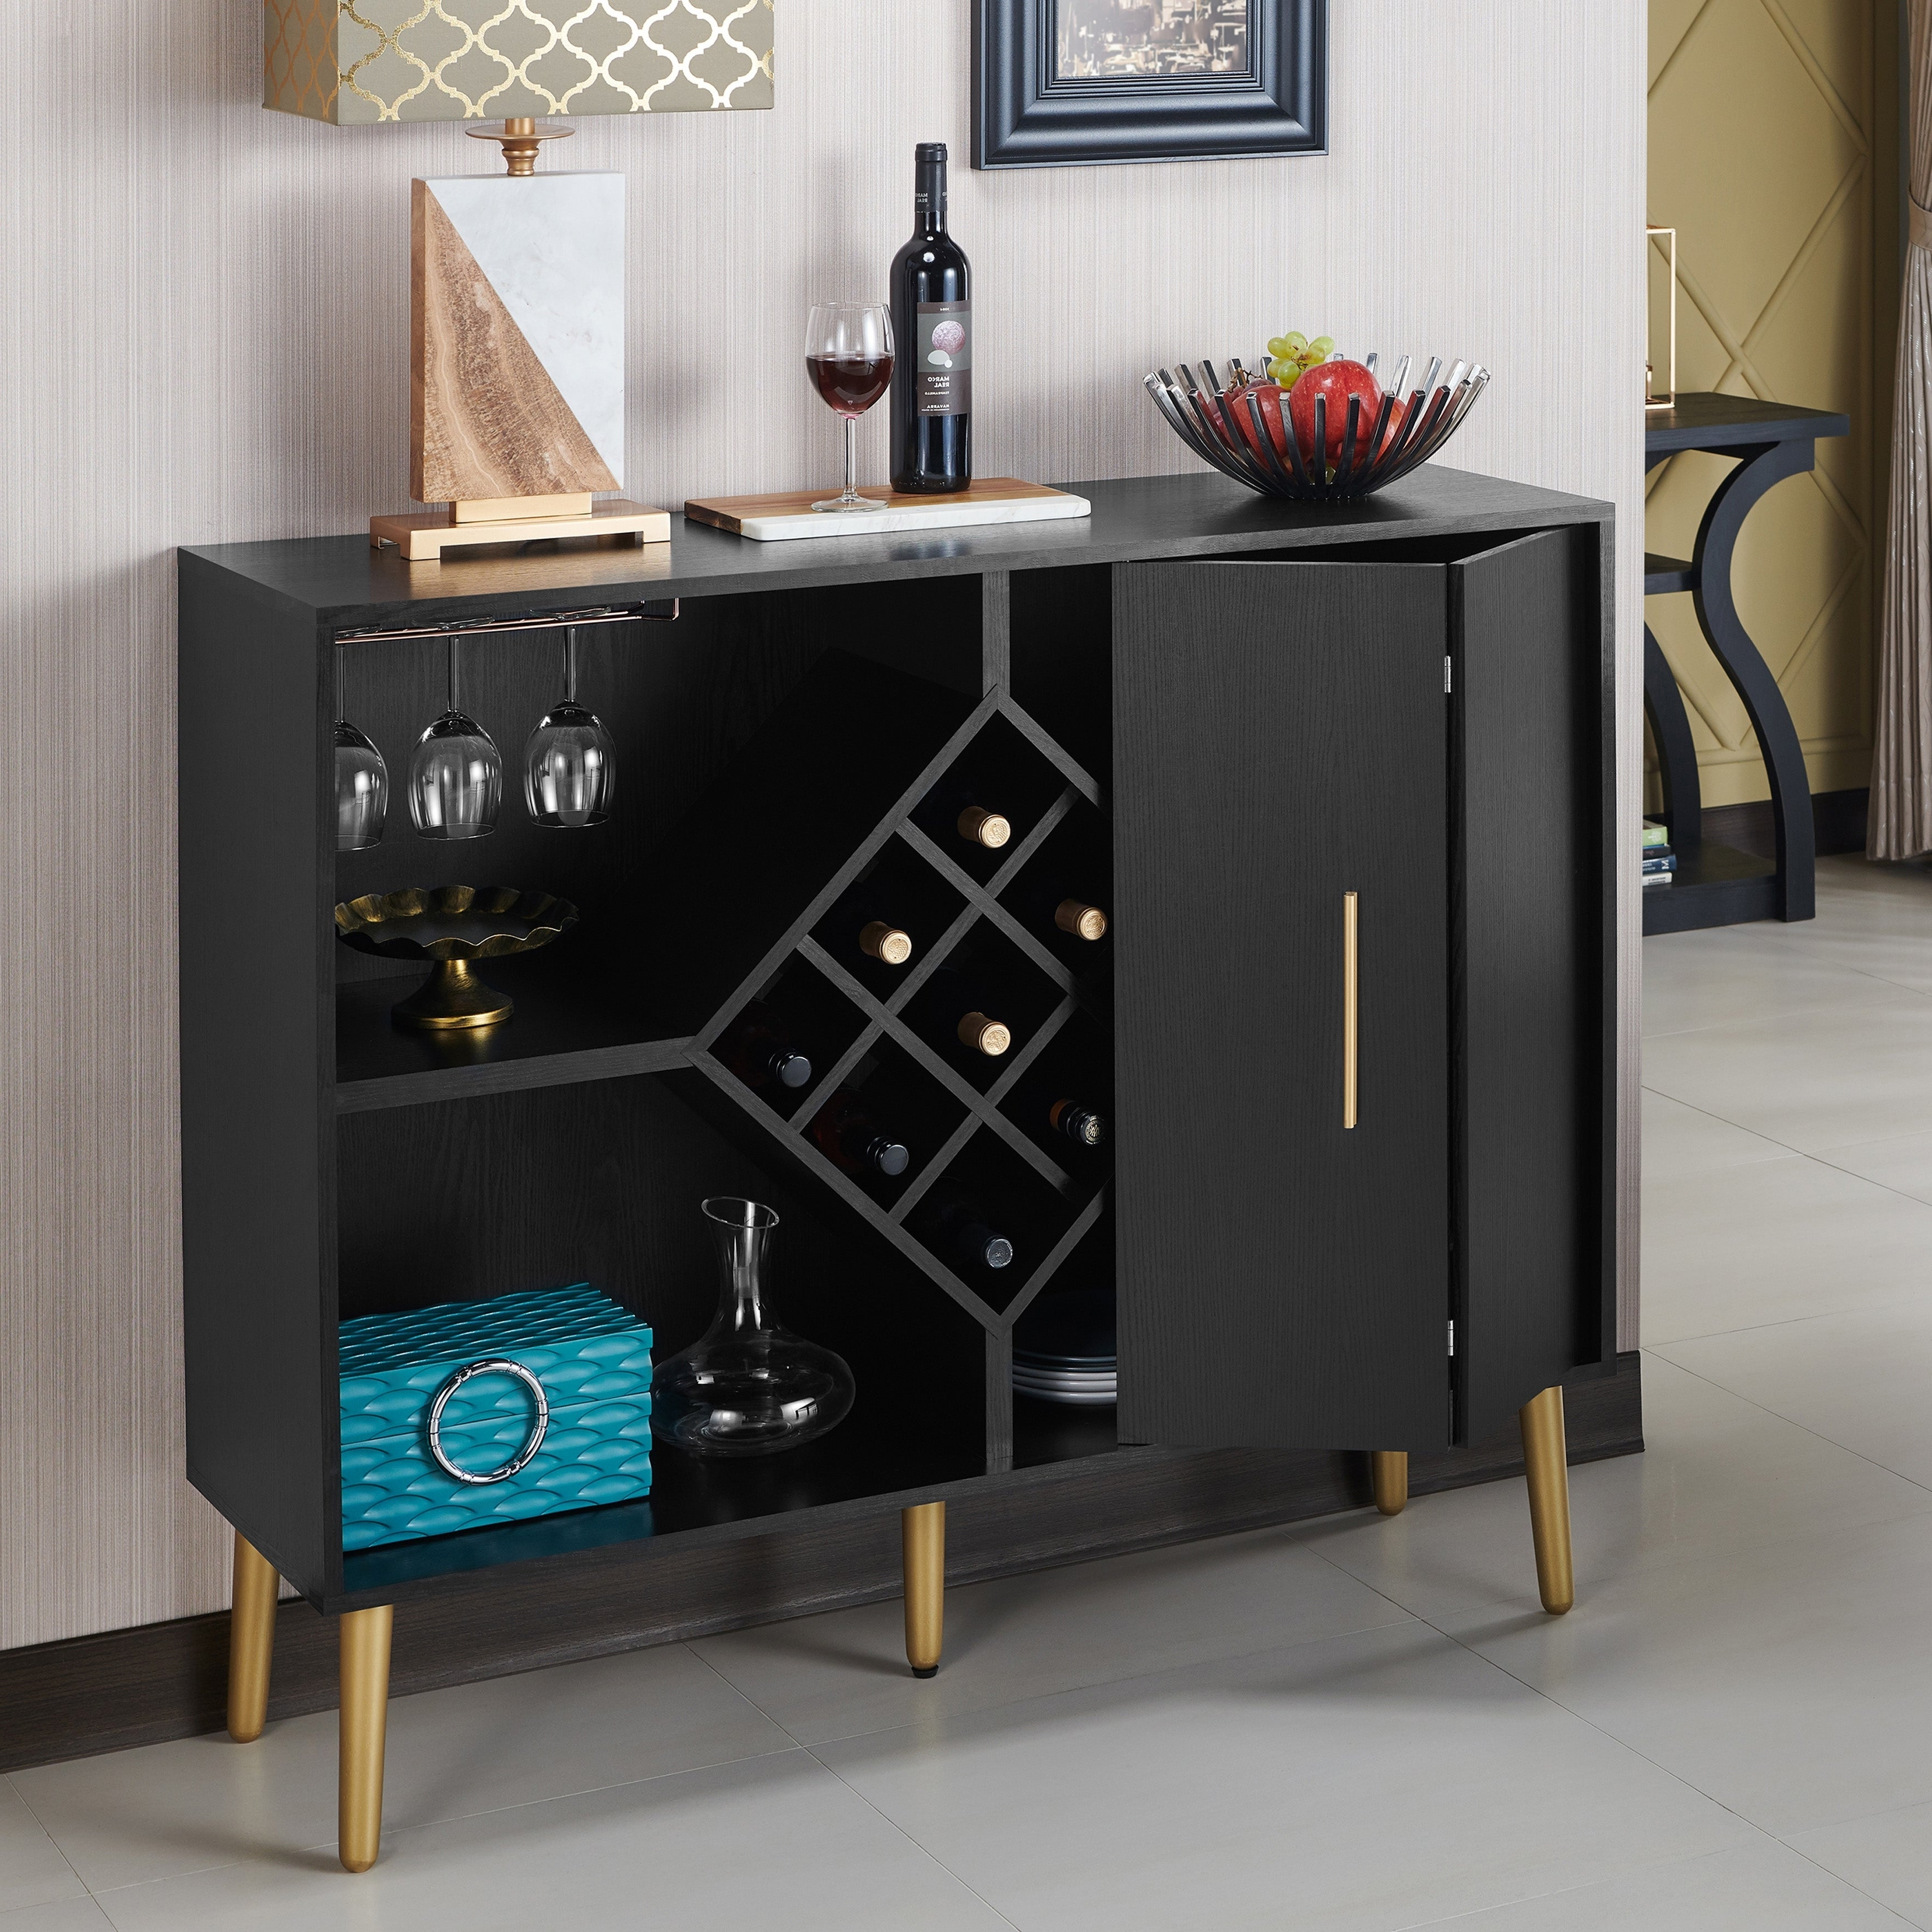 Carson Carrington Lesund Modern Black Storage Buffet Regarding Modern Black Storage Buffets (View 9 of 20)